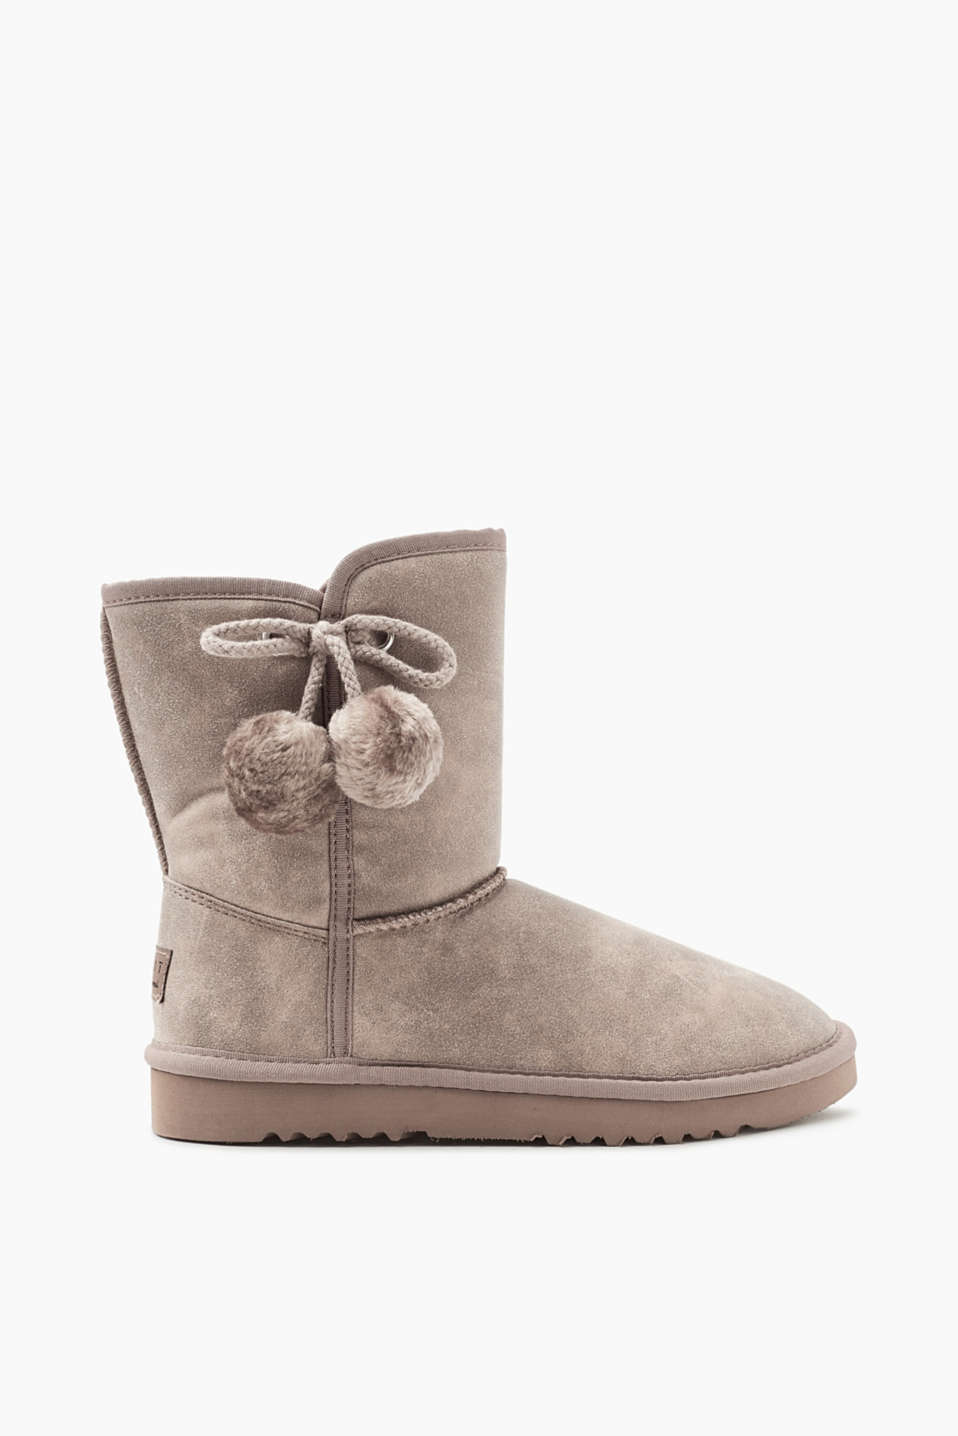 These winter boots in cool faux nubuck leather with a cosy faux fur lining are a classic piece.